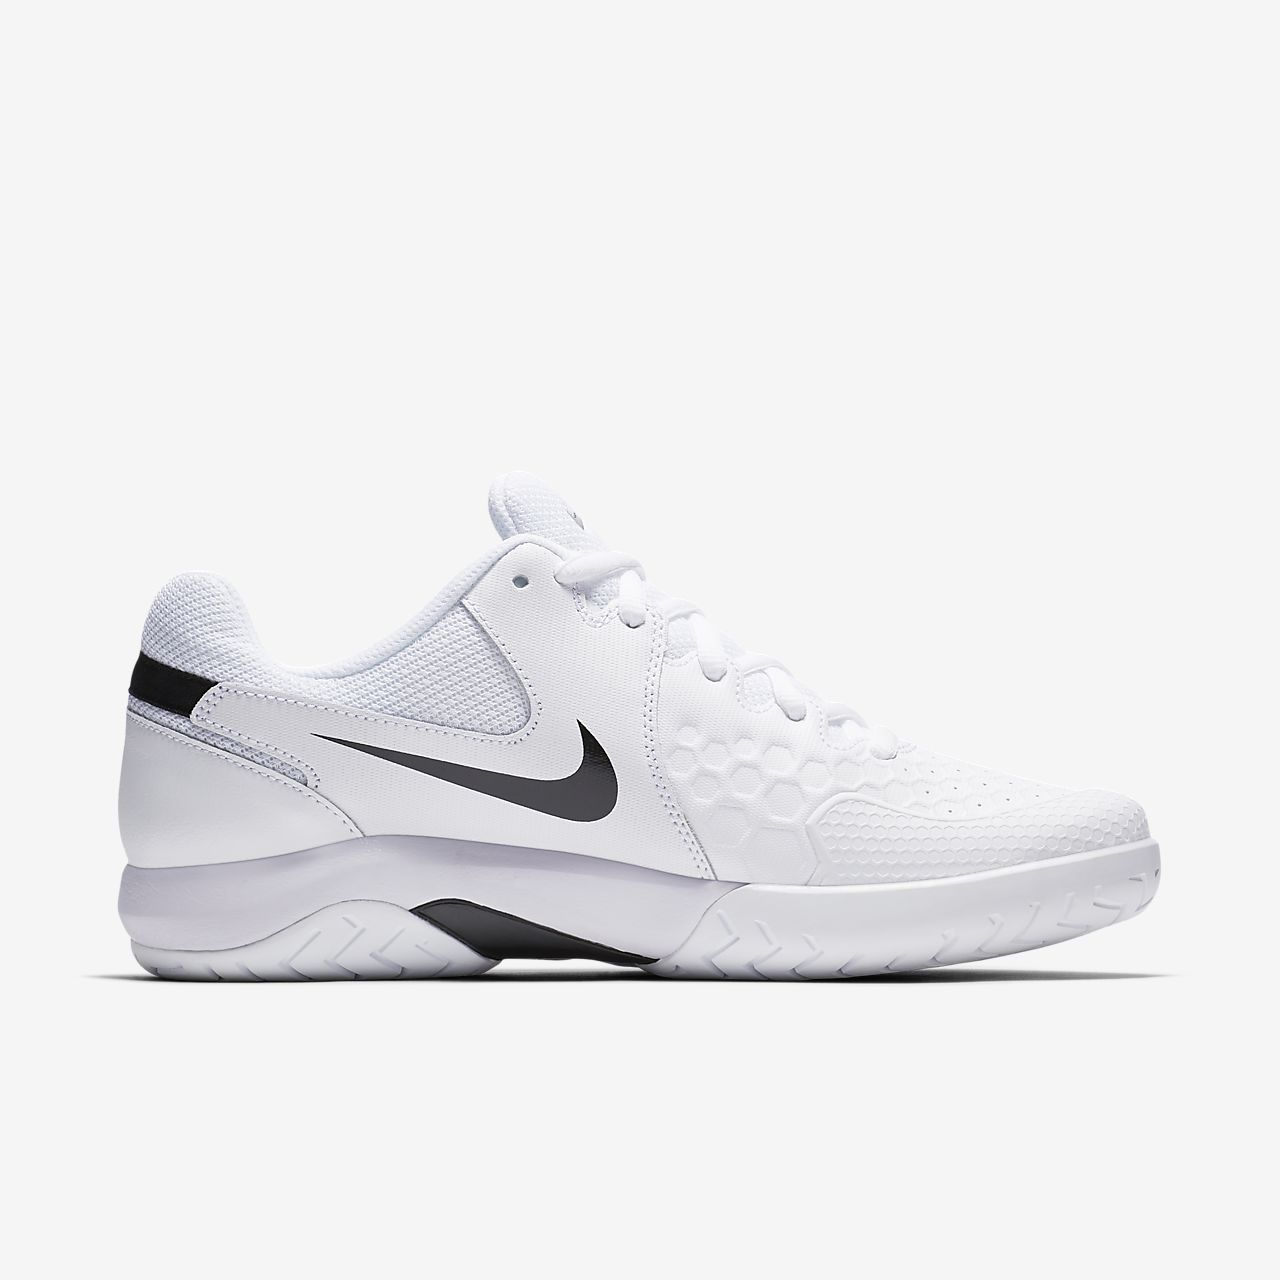 4436c5374 nikecourt-air-zoom-resistance-hard-court-tennis-shoe-rJTGAGEP.jpg